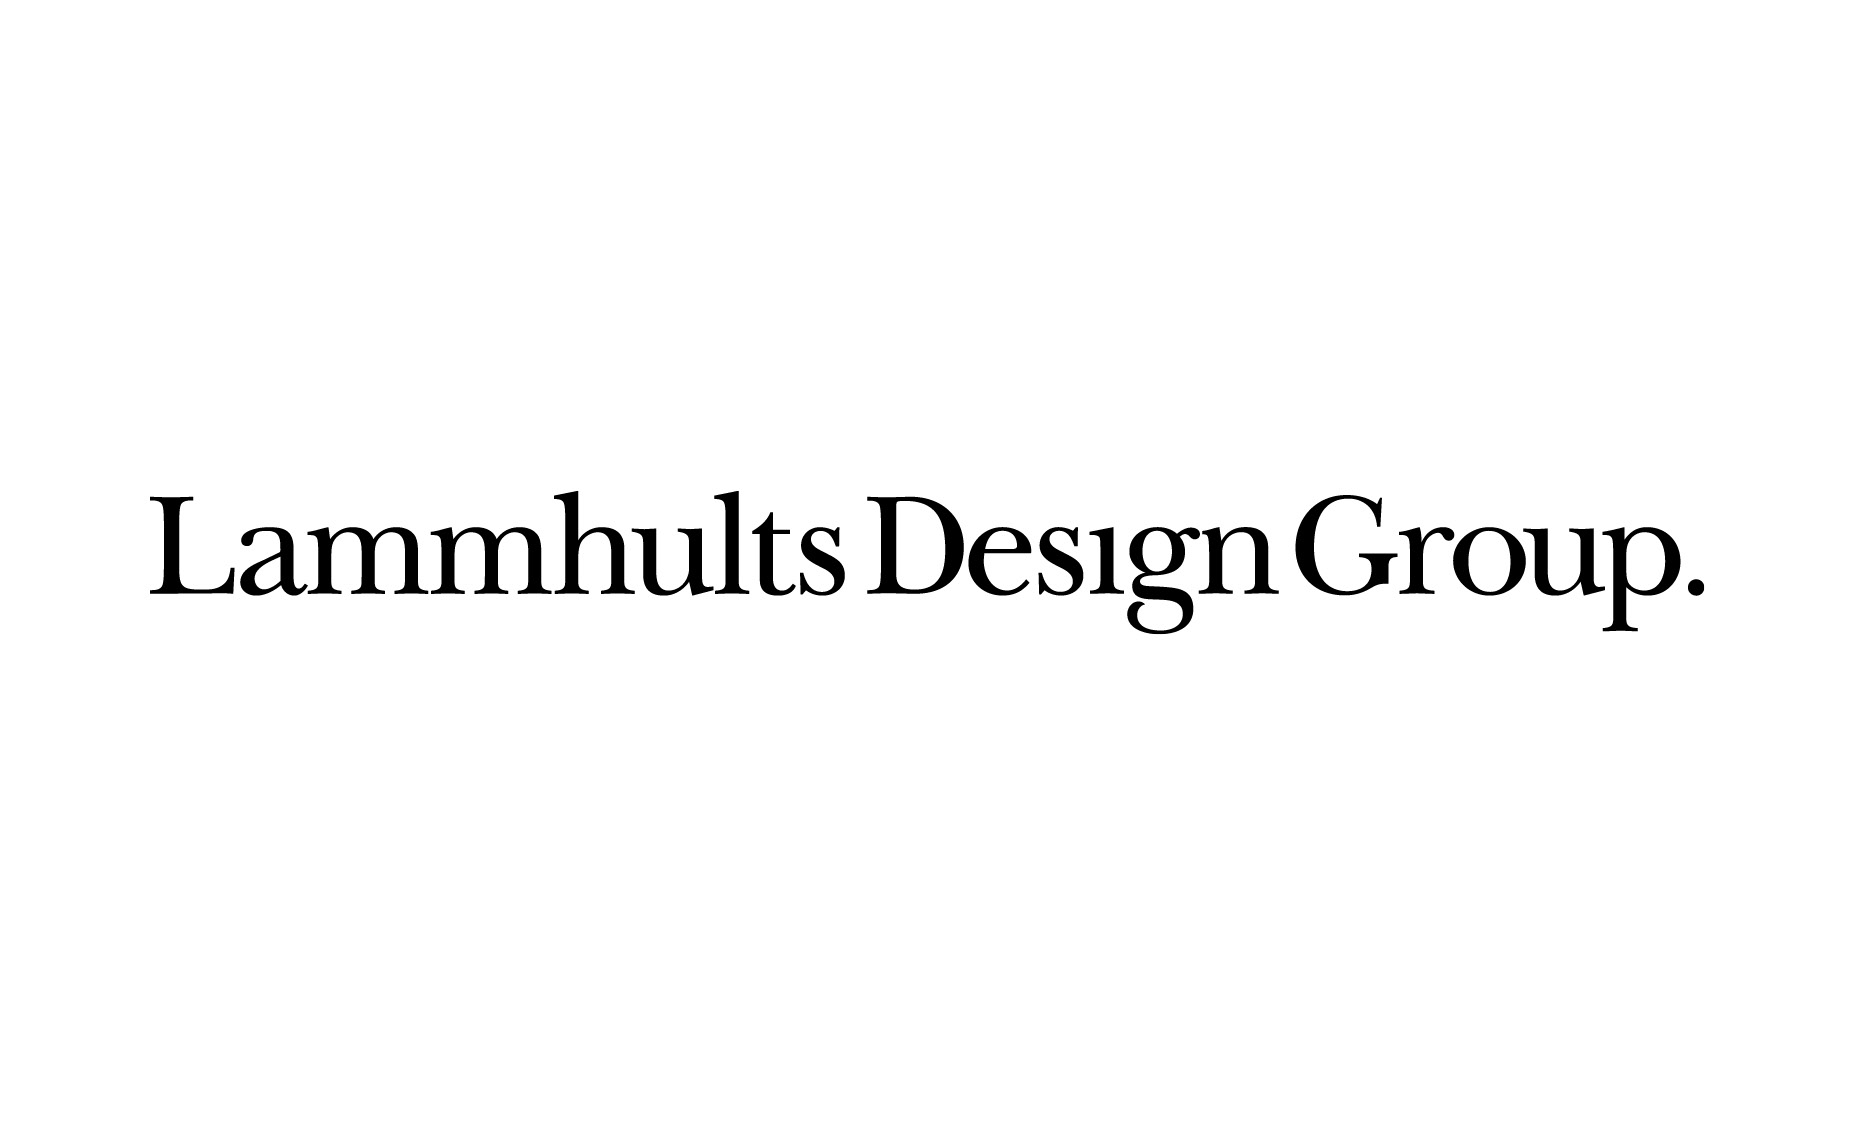 Lammhults Design Group